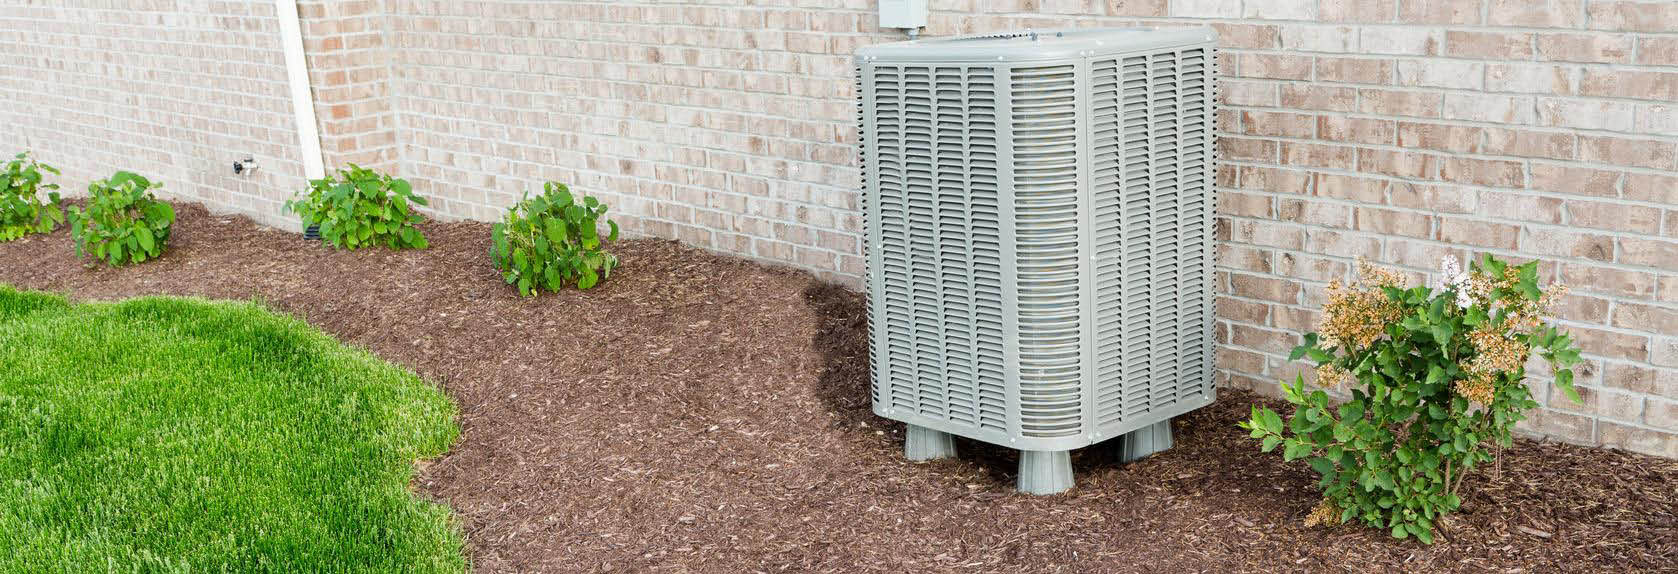 cooling heating system, air cooling system, central air conditioner prices, heat and cool air